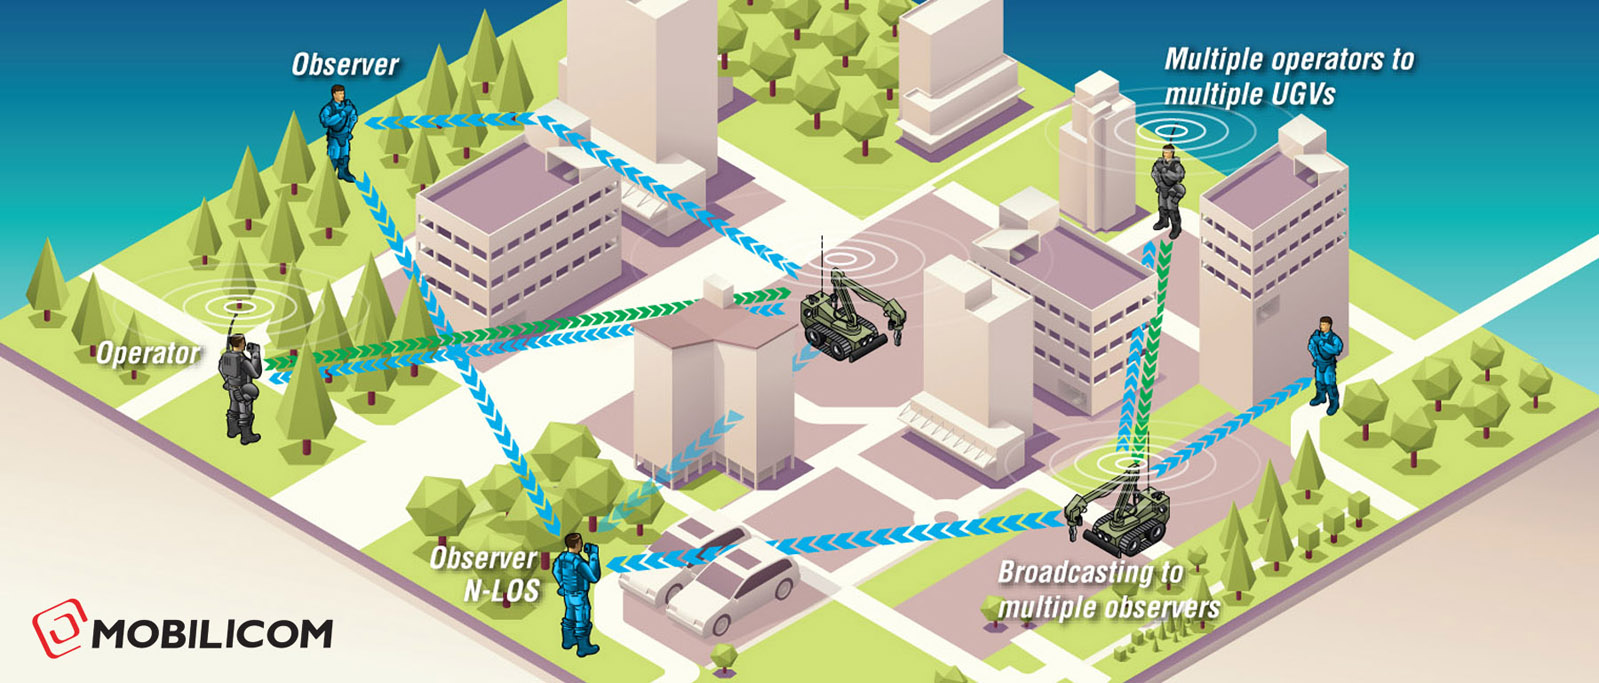 Mobilicom's Solution for Unmanned Ground Vehicles